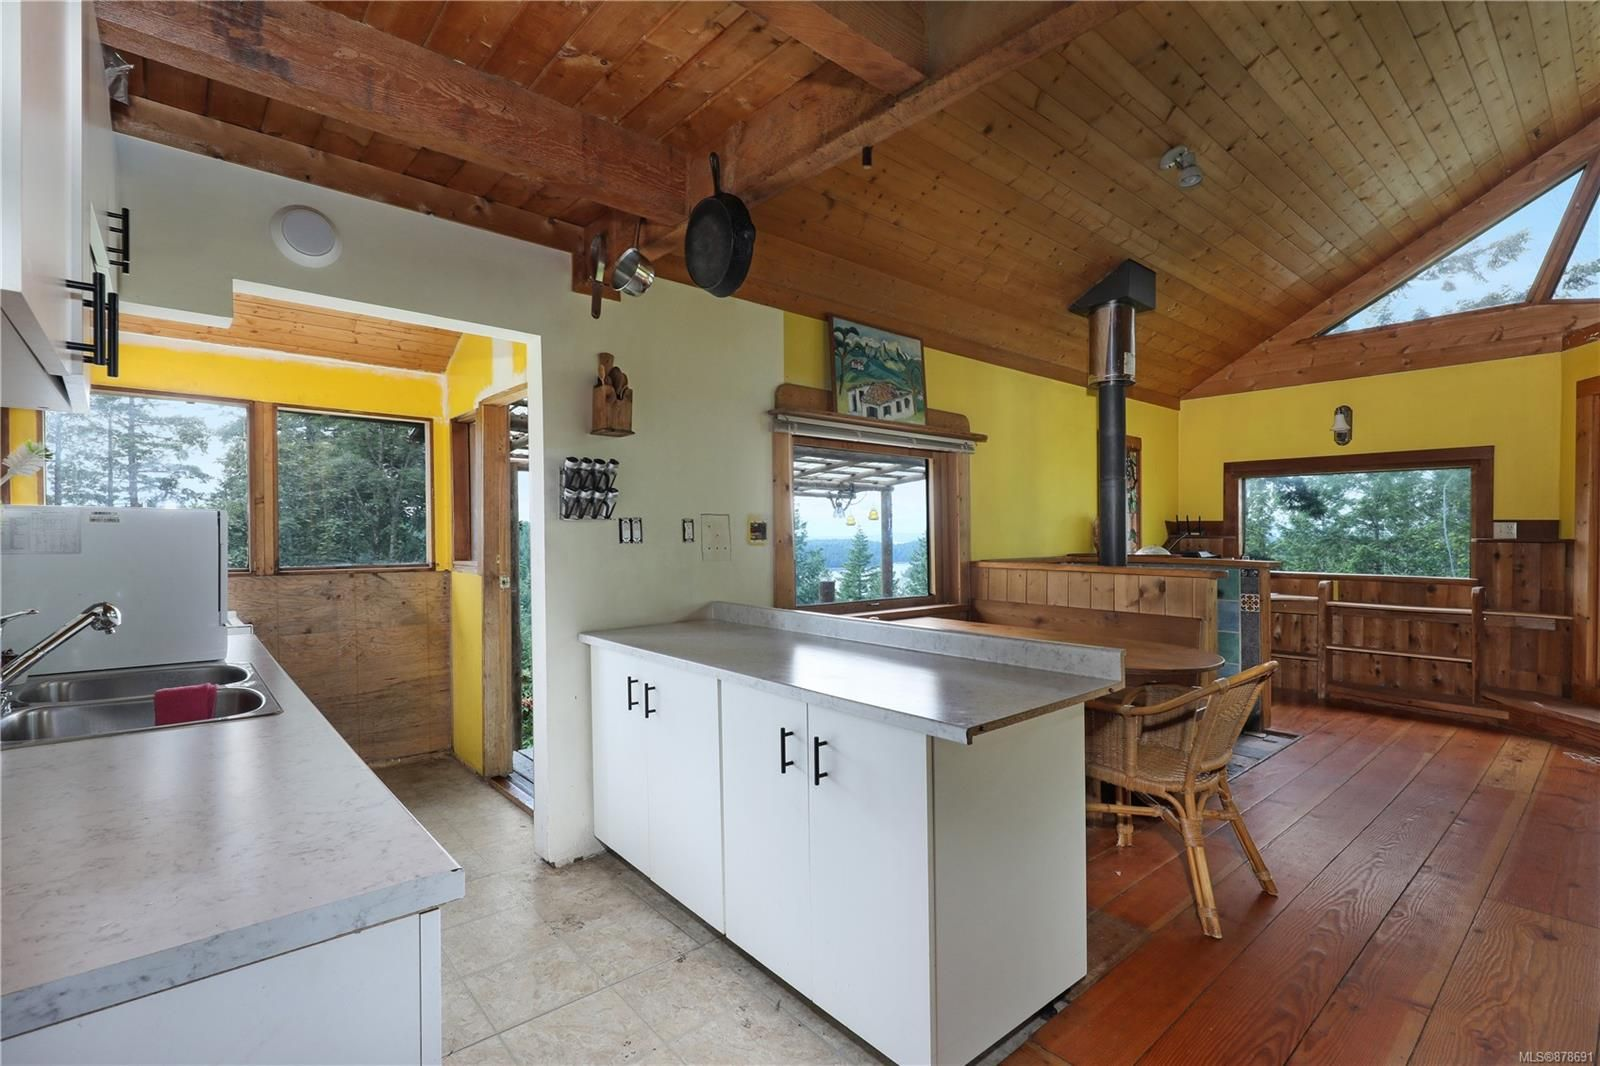 Photo 44: Photos: 979 Thunder Rd in : Isl Cortes Island House for sale (Islands)  : MLS®# 878691